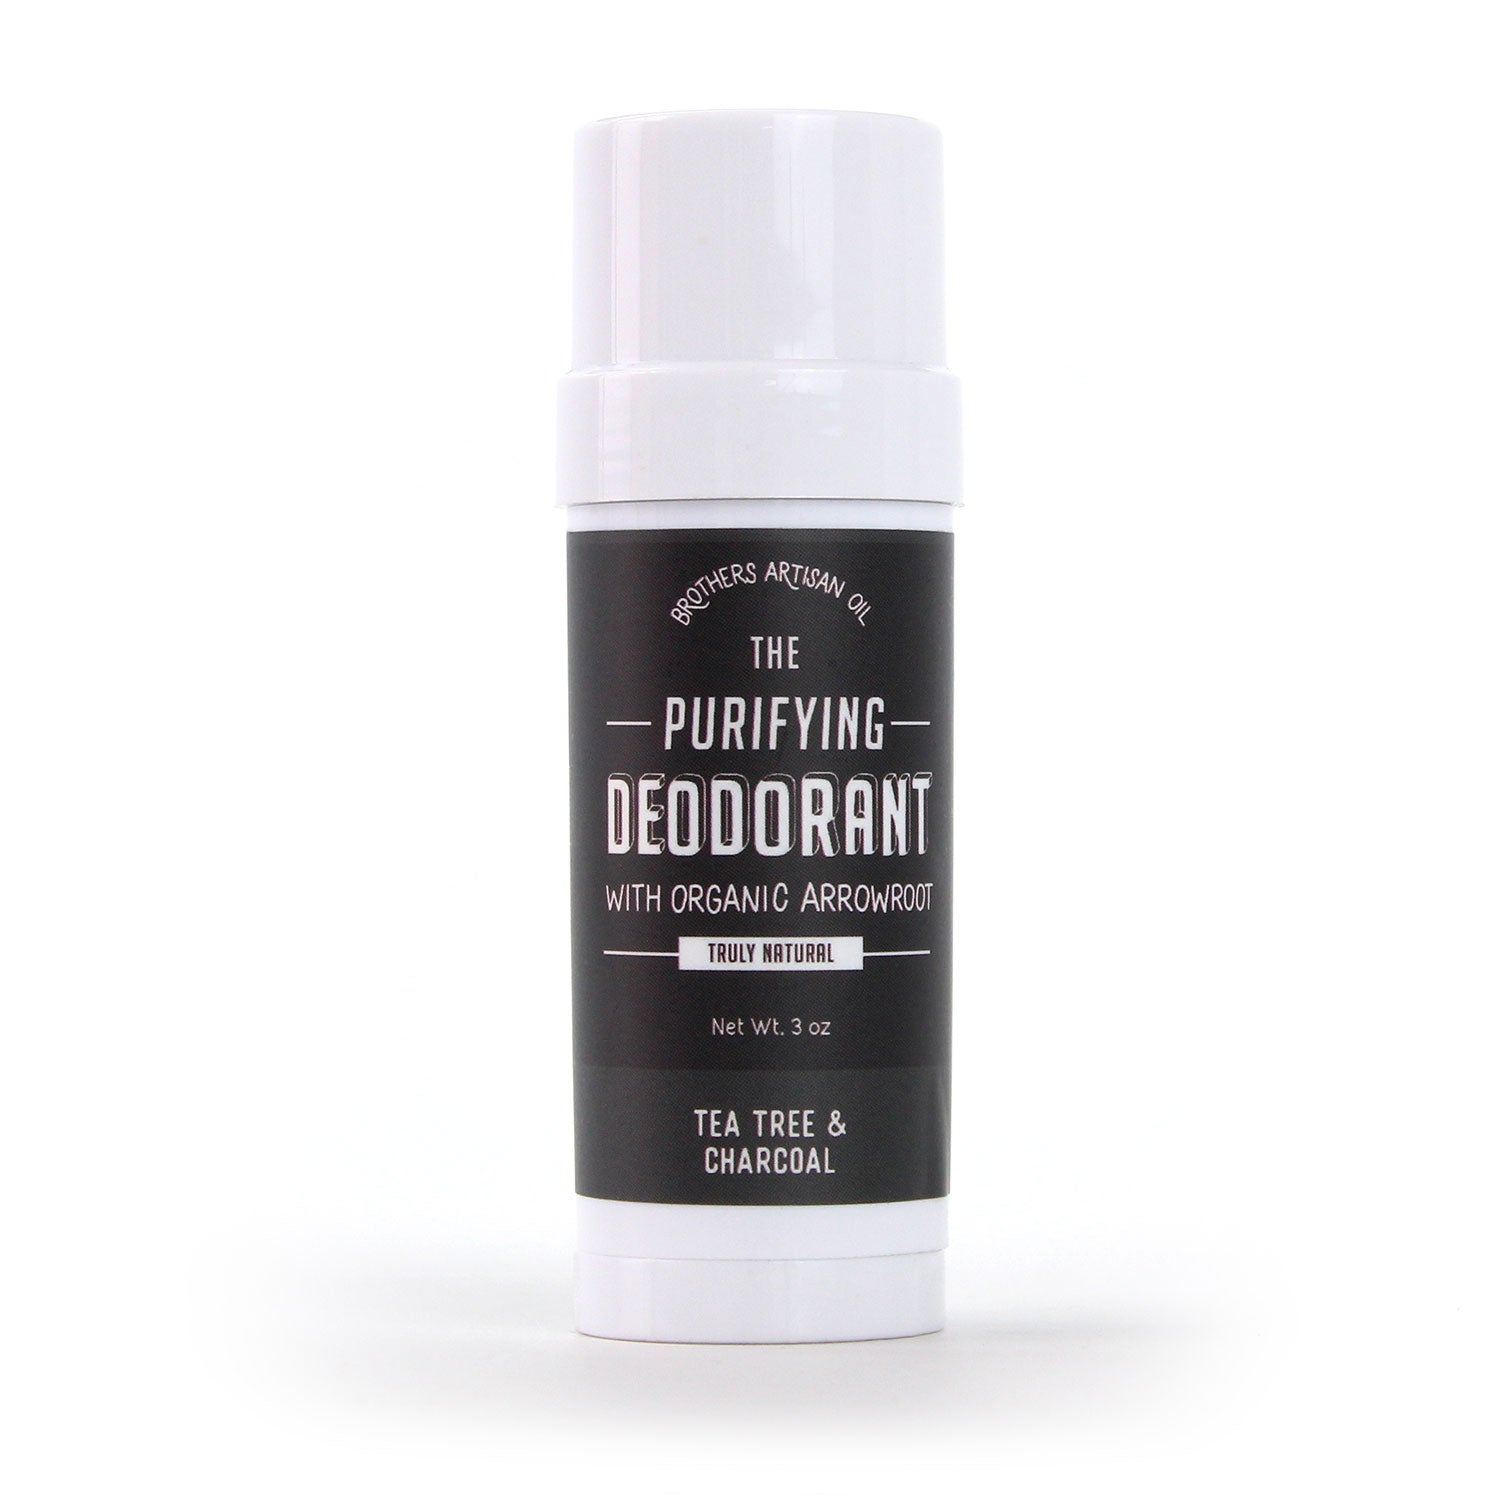 The Purifying Deodorant: Tea Tree & Charcoal